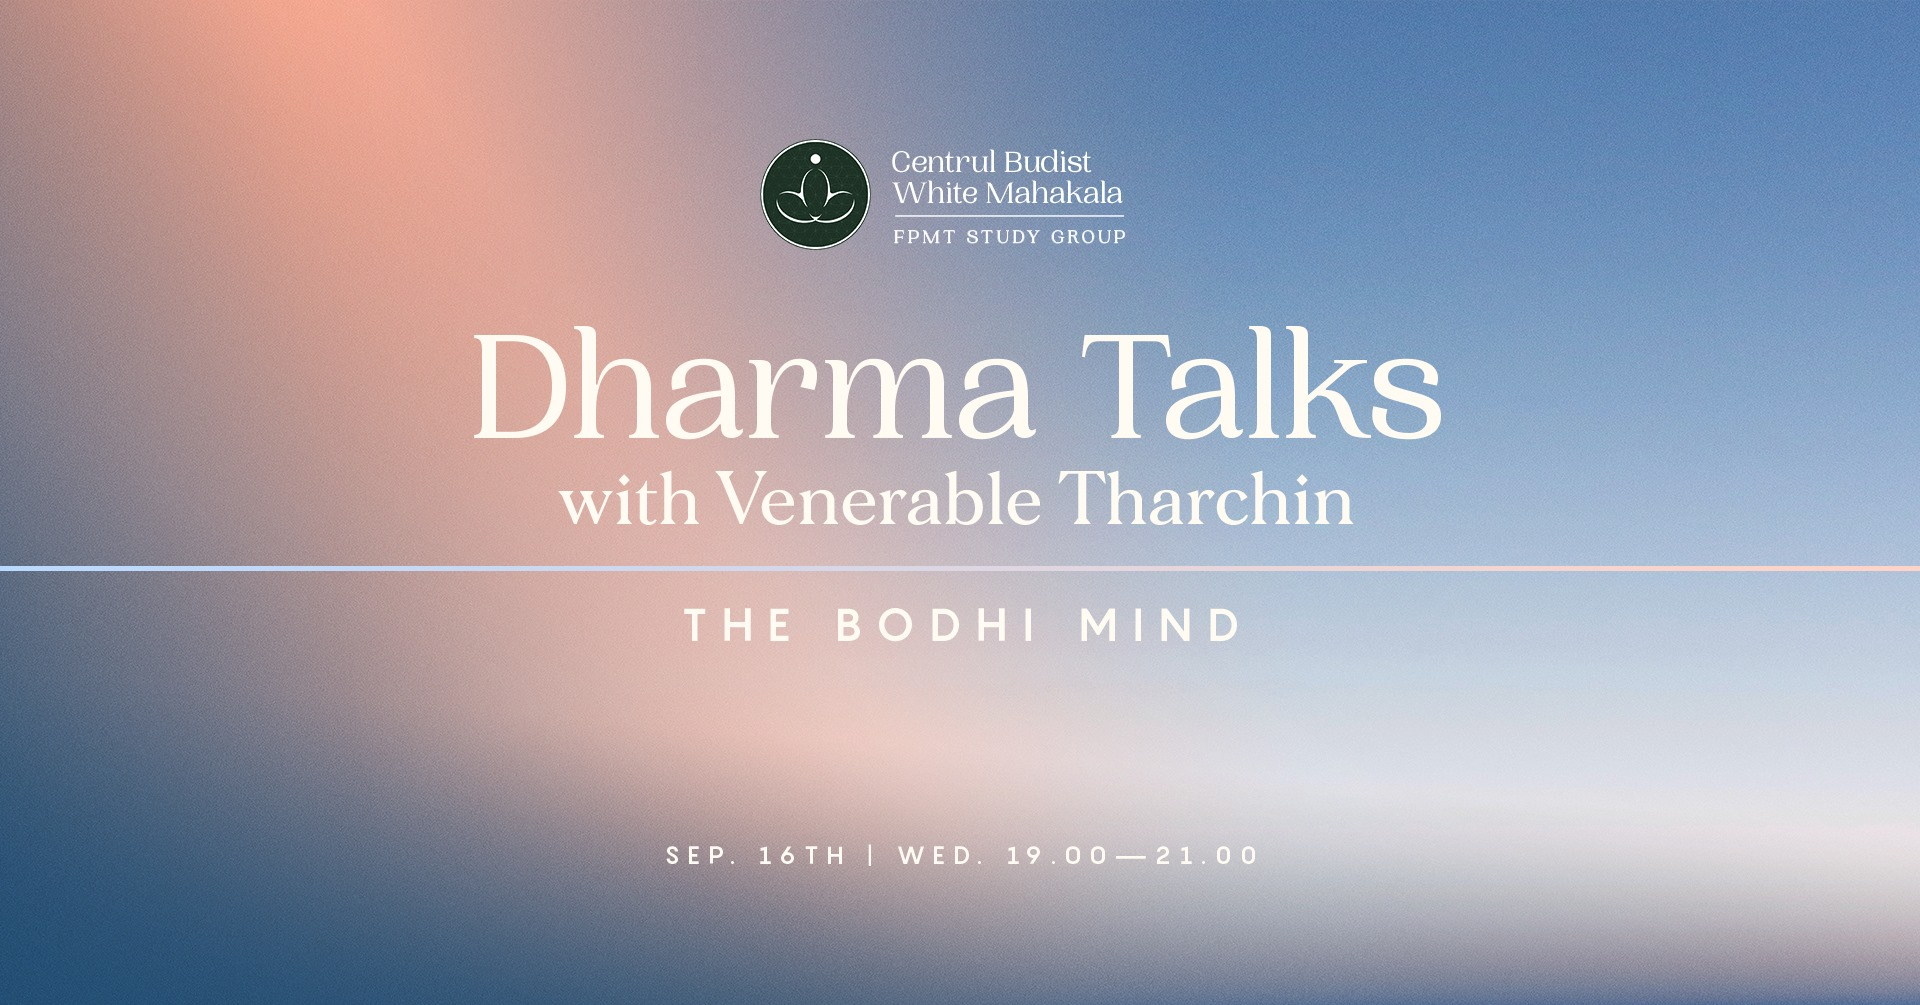 Dharma Talks with Ven. Tharchin